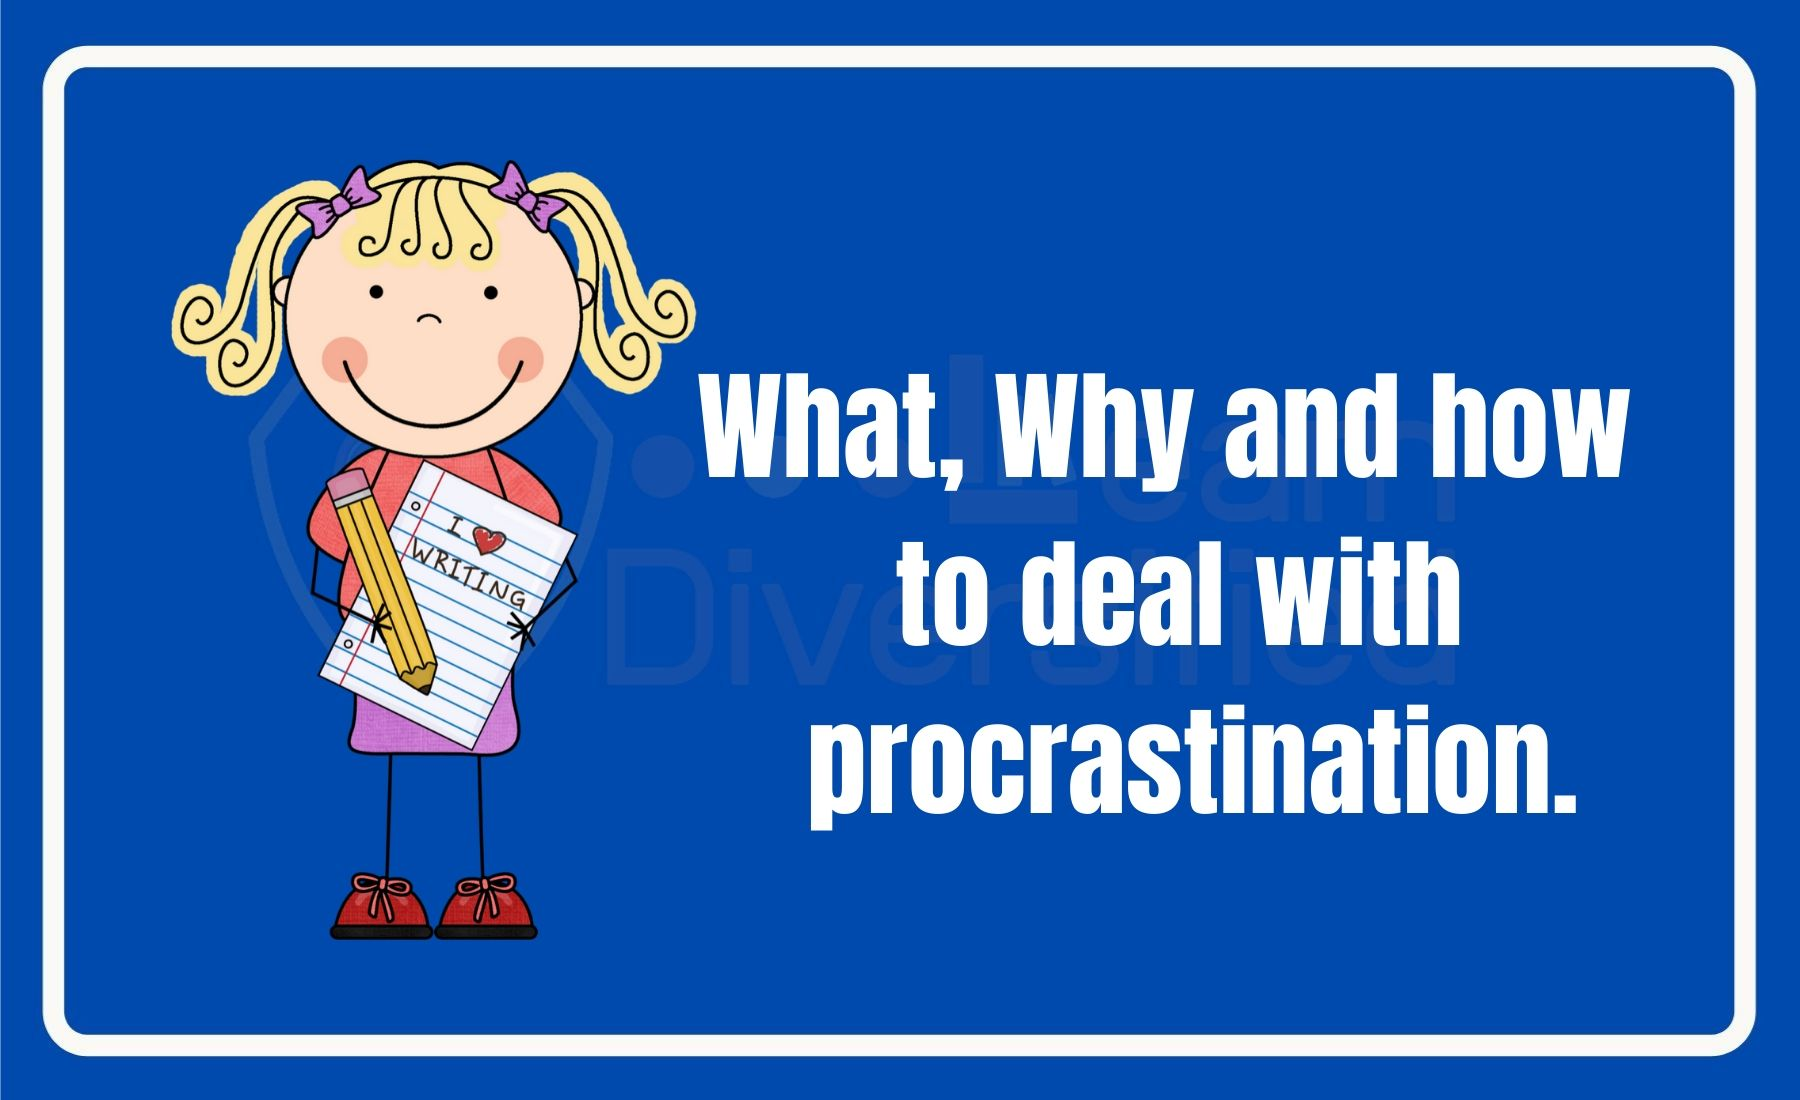 procrastination - what, why and how to overcome procrastination